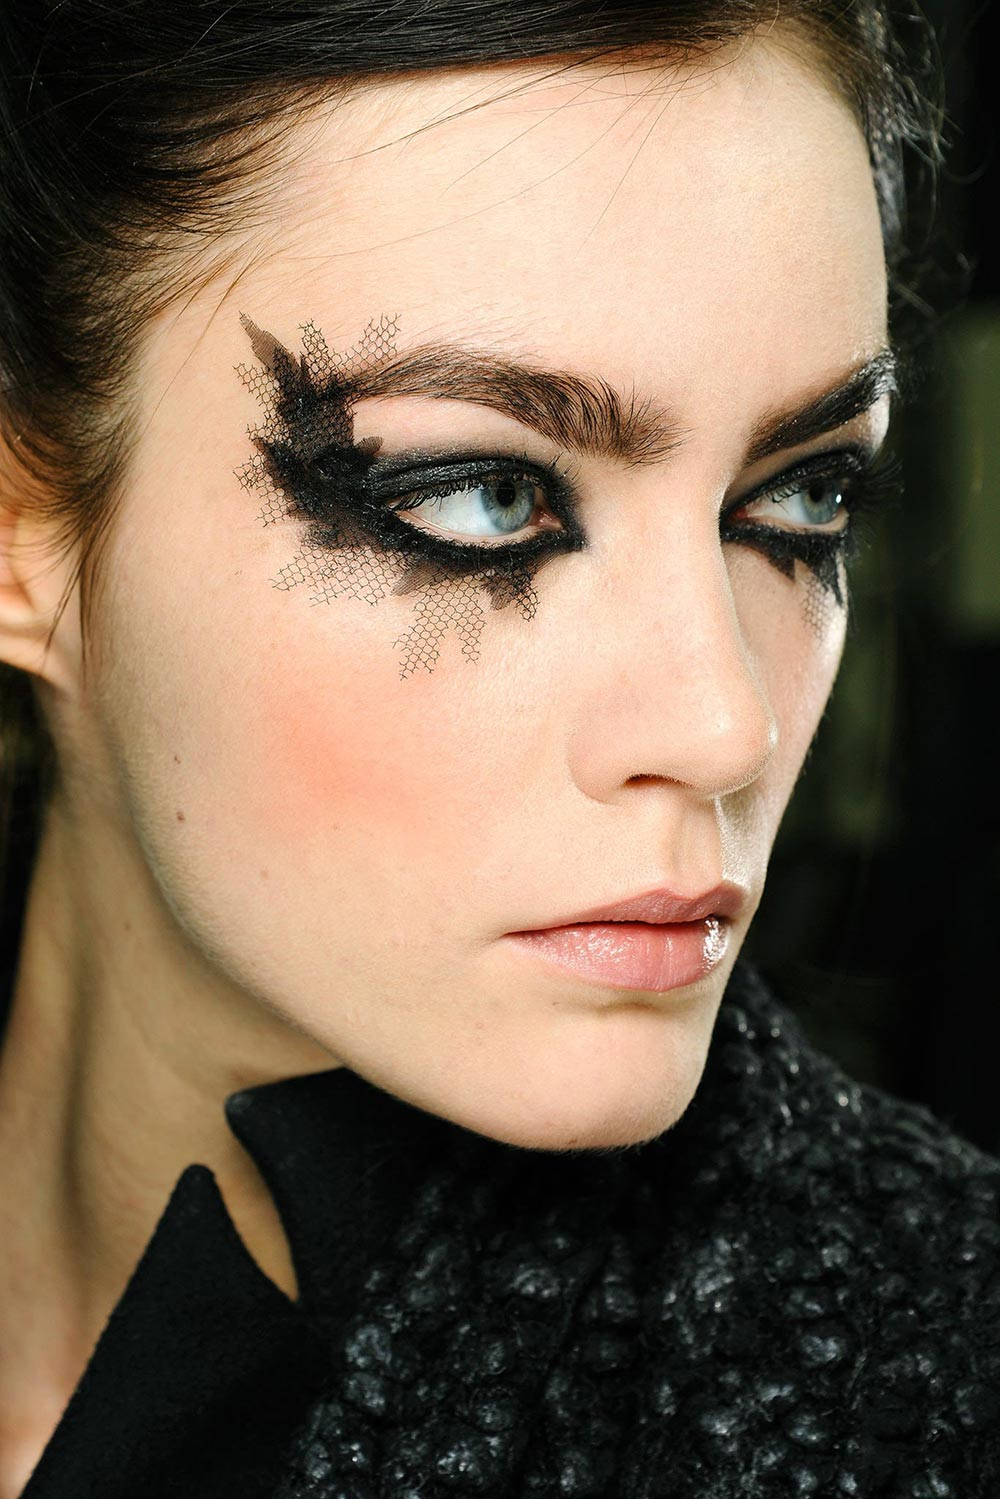 Chanel Makeup Brushes New Design: Runway Beauty: Gothic Smudgy Eye At Chanel Spring 2013